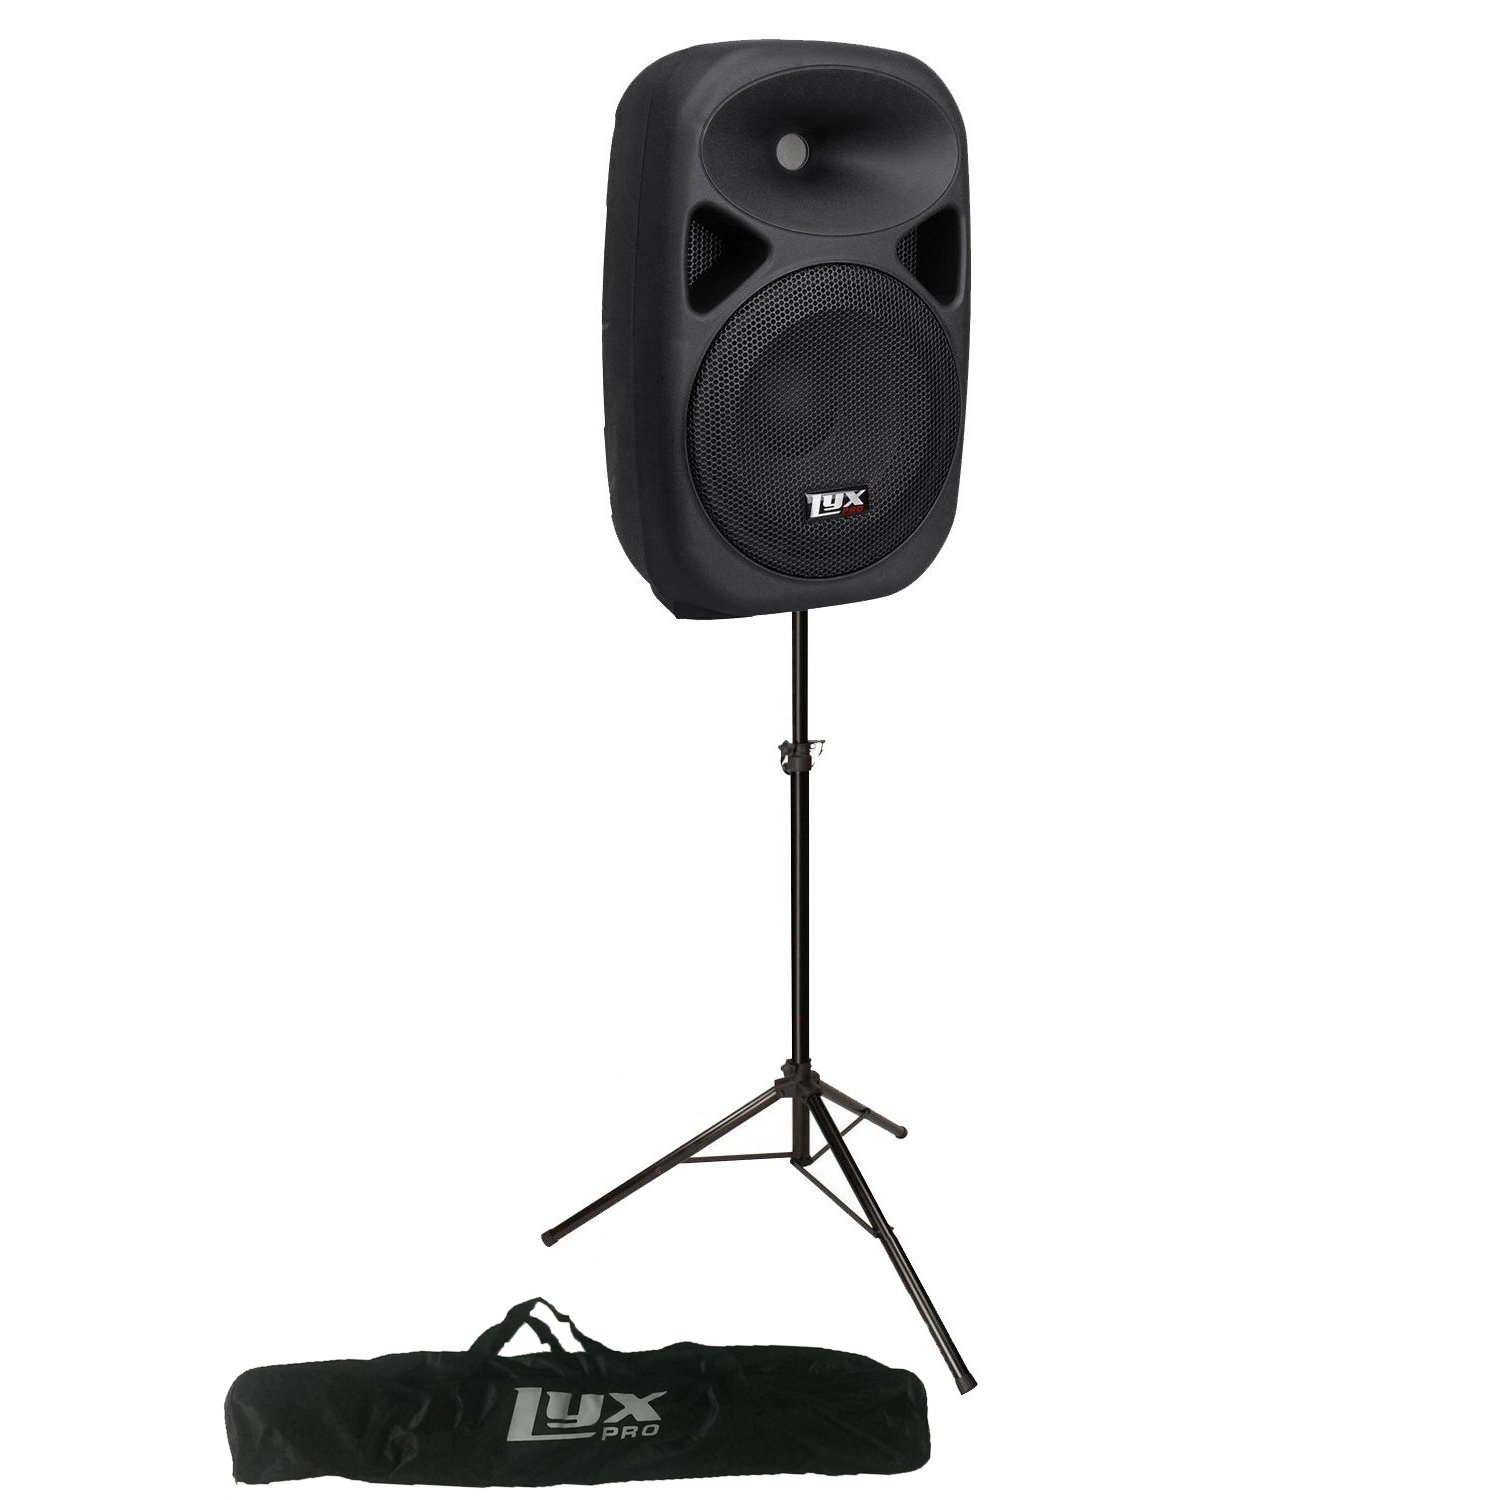 LyxPro SPEAKER w/ STAND KIT: 10'' Portable PA SPEAKER SYSTEM w/ Onboard Equalizer, Bluetooth, SD CARD SLOT, USB, AUX Input, SPEAKER STAND with BAG